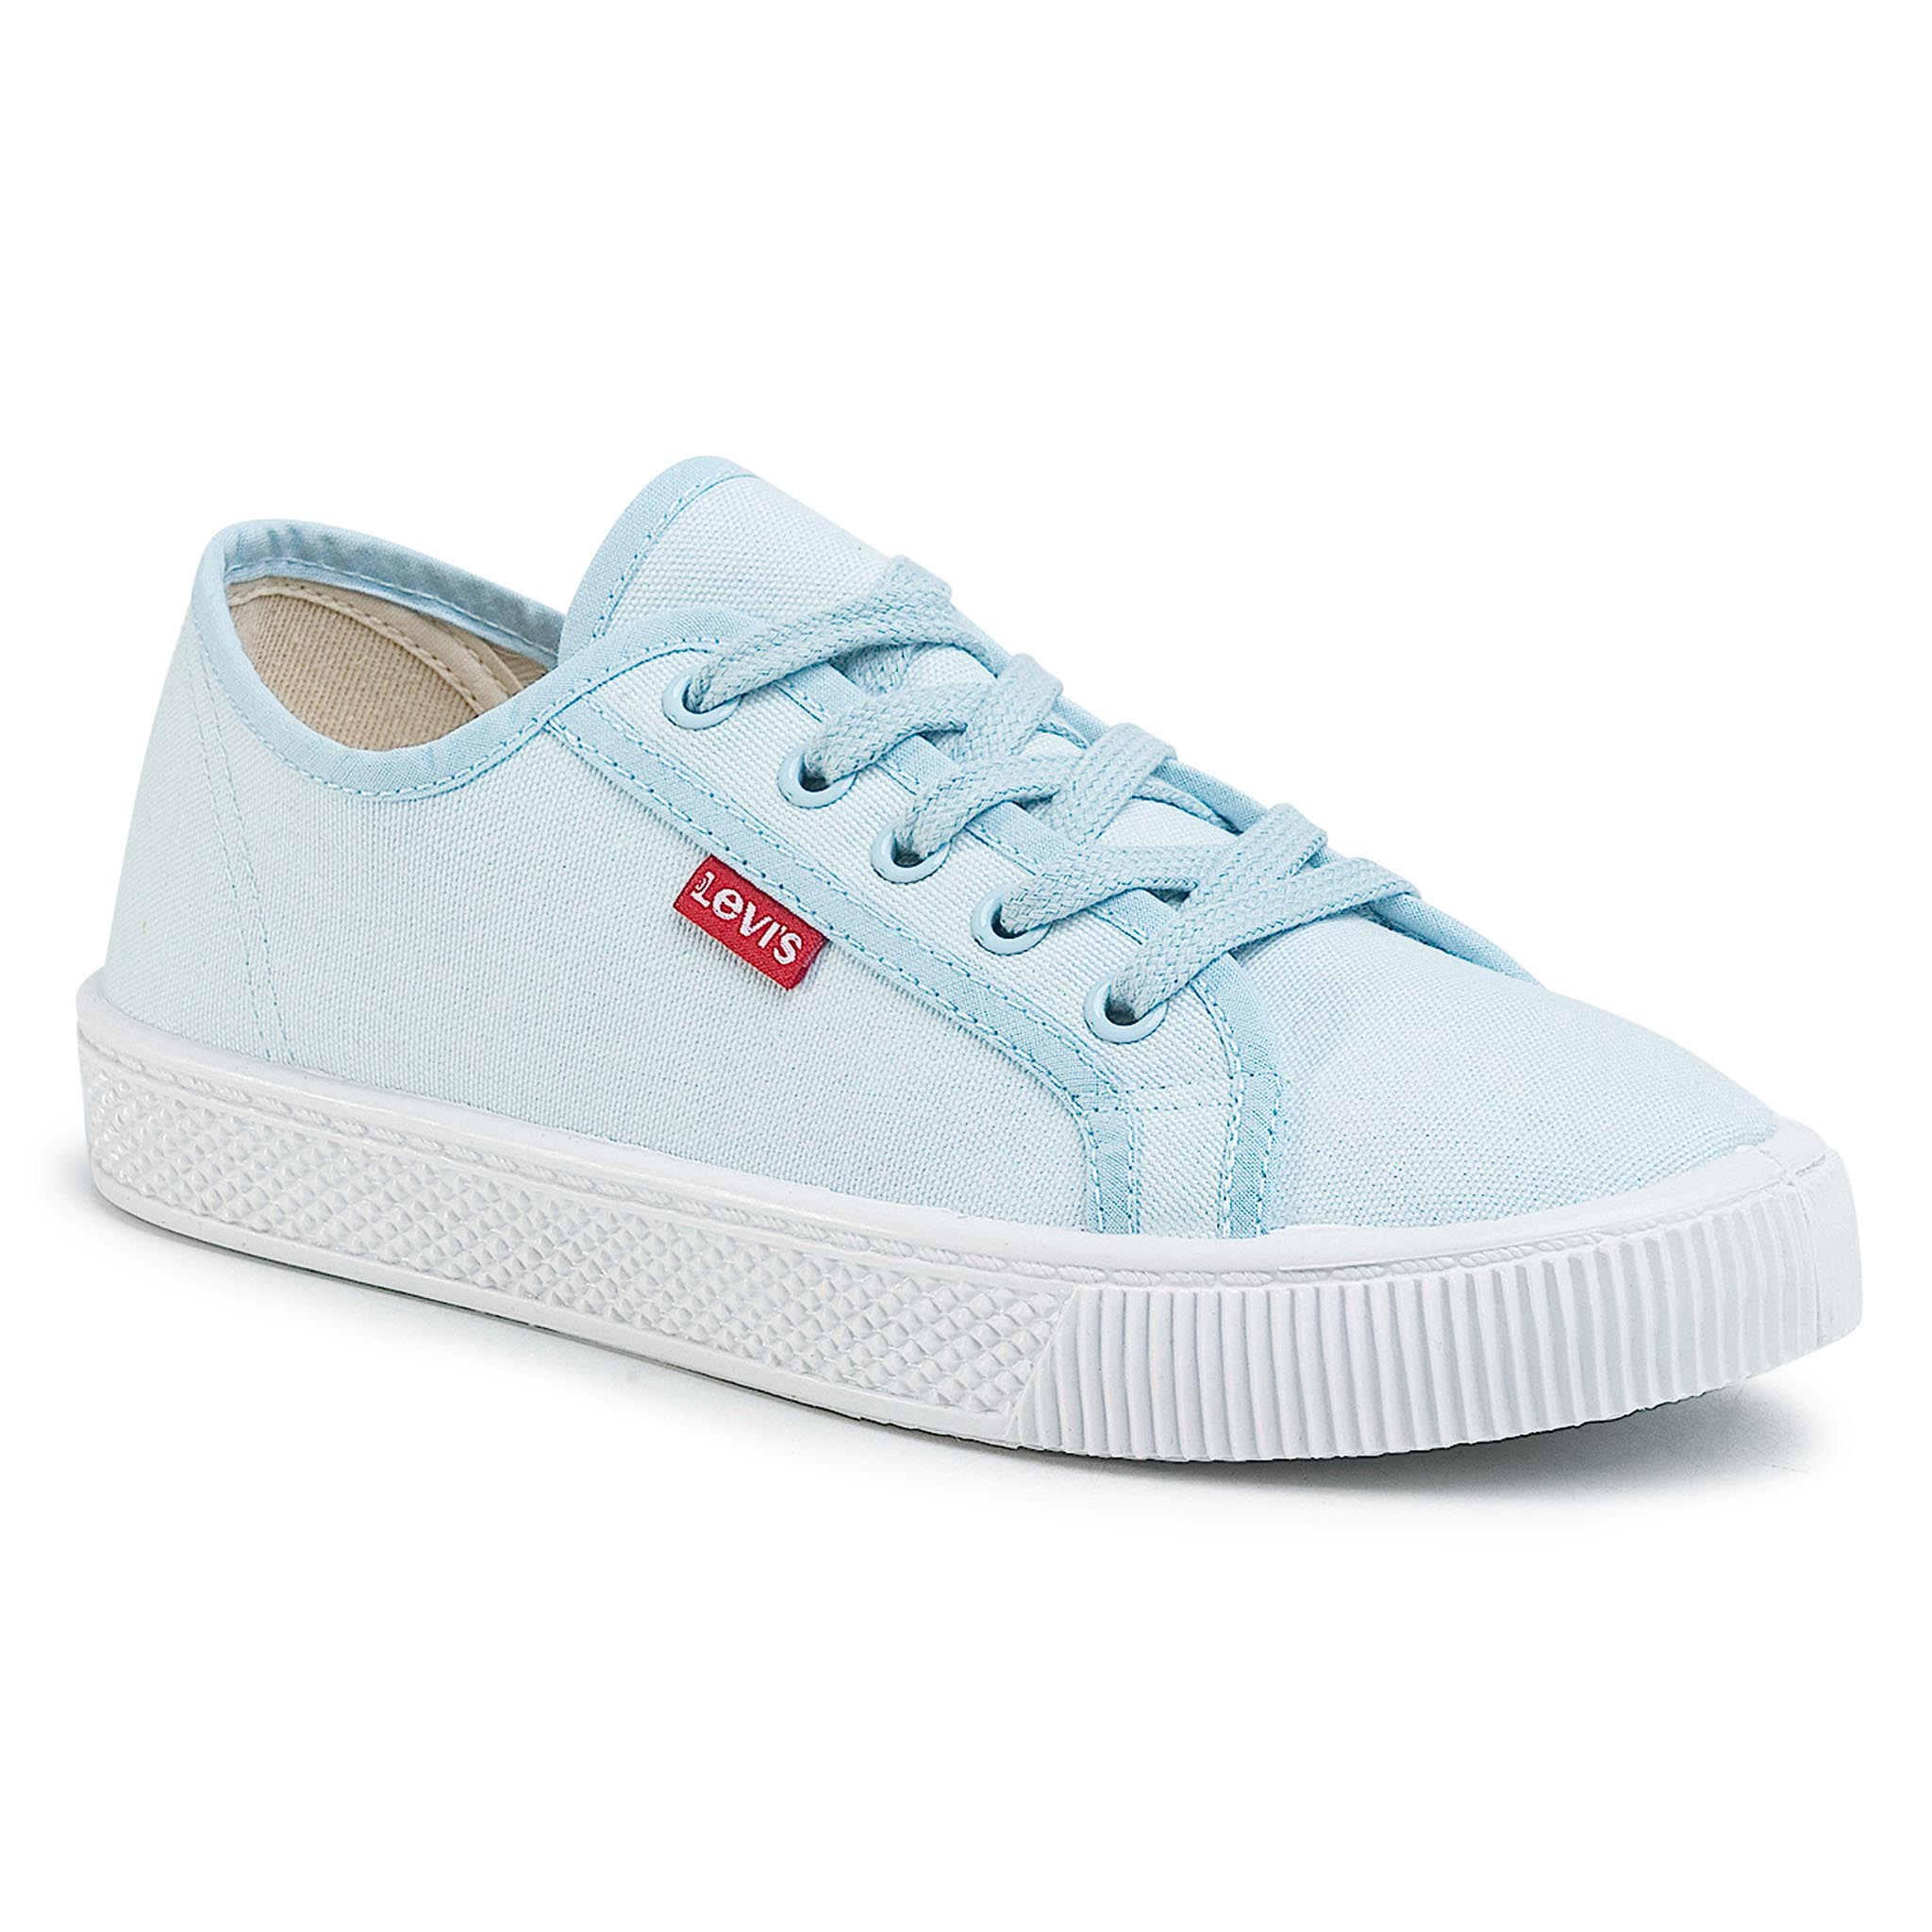 Teniși LEVI'S - 225849-1733-13 Light Blue